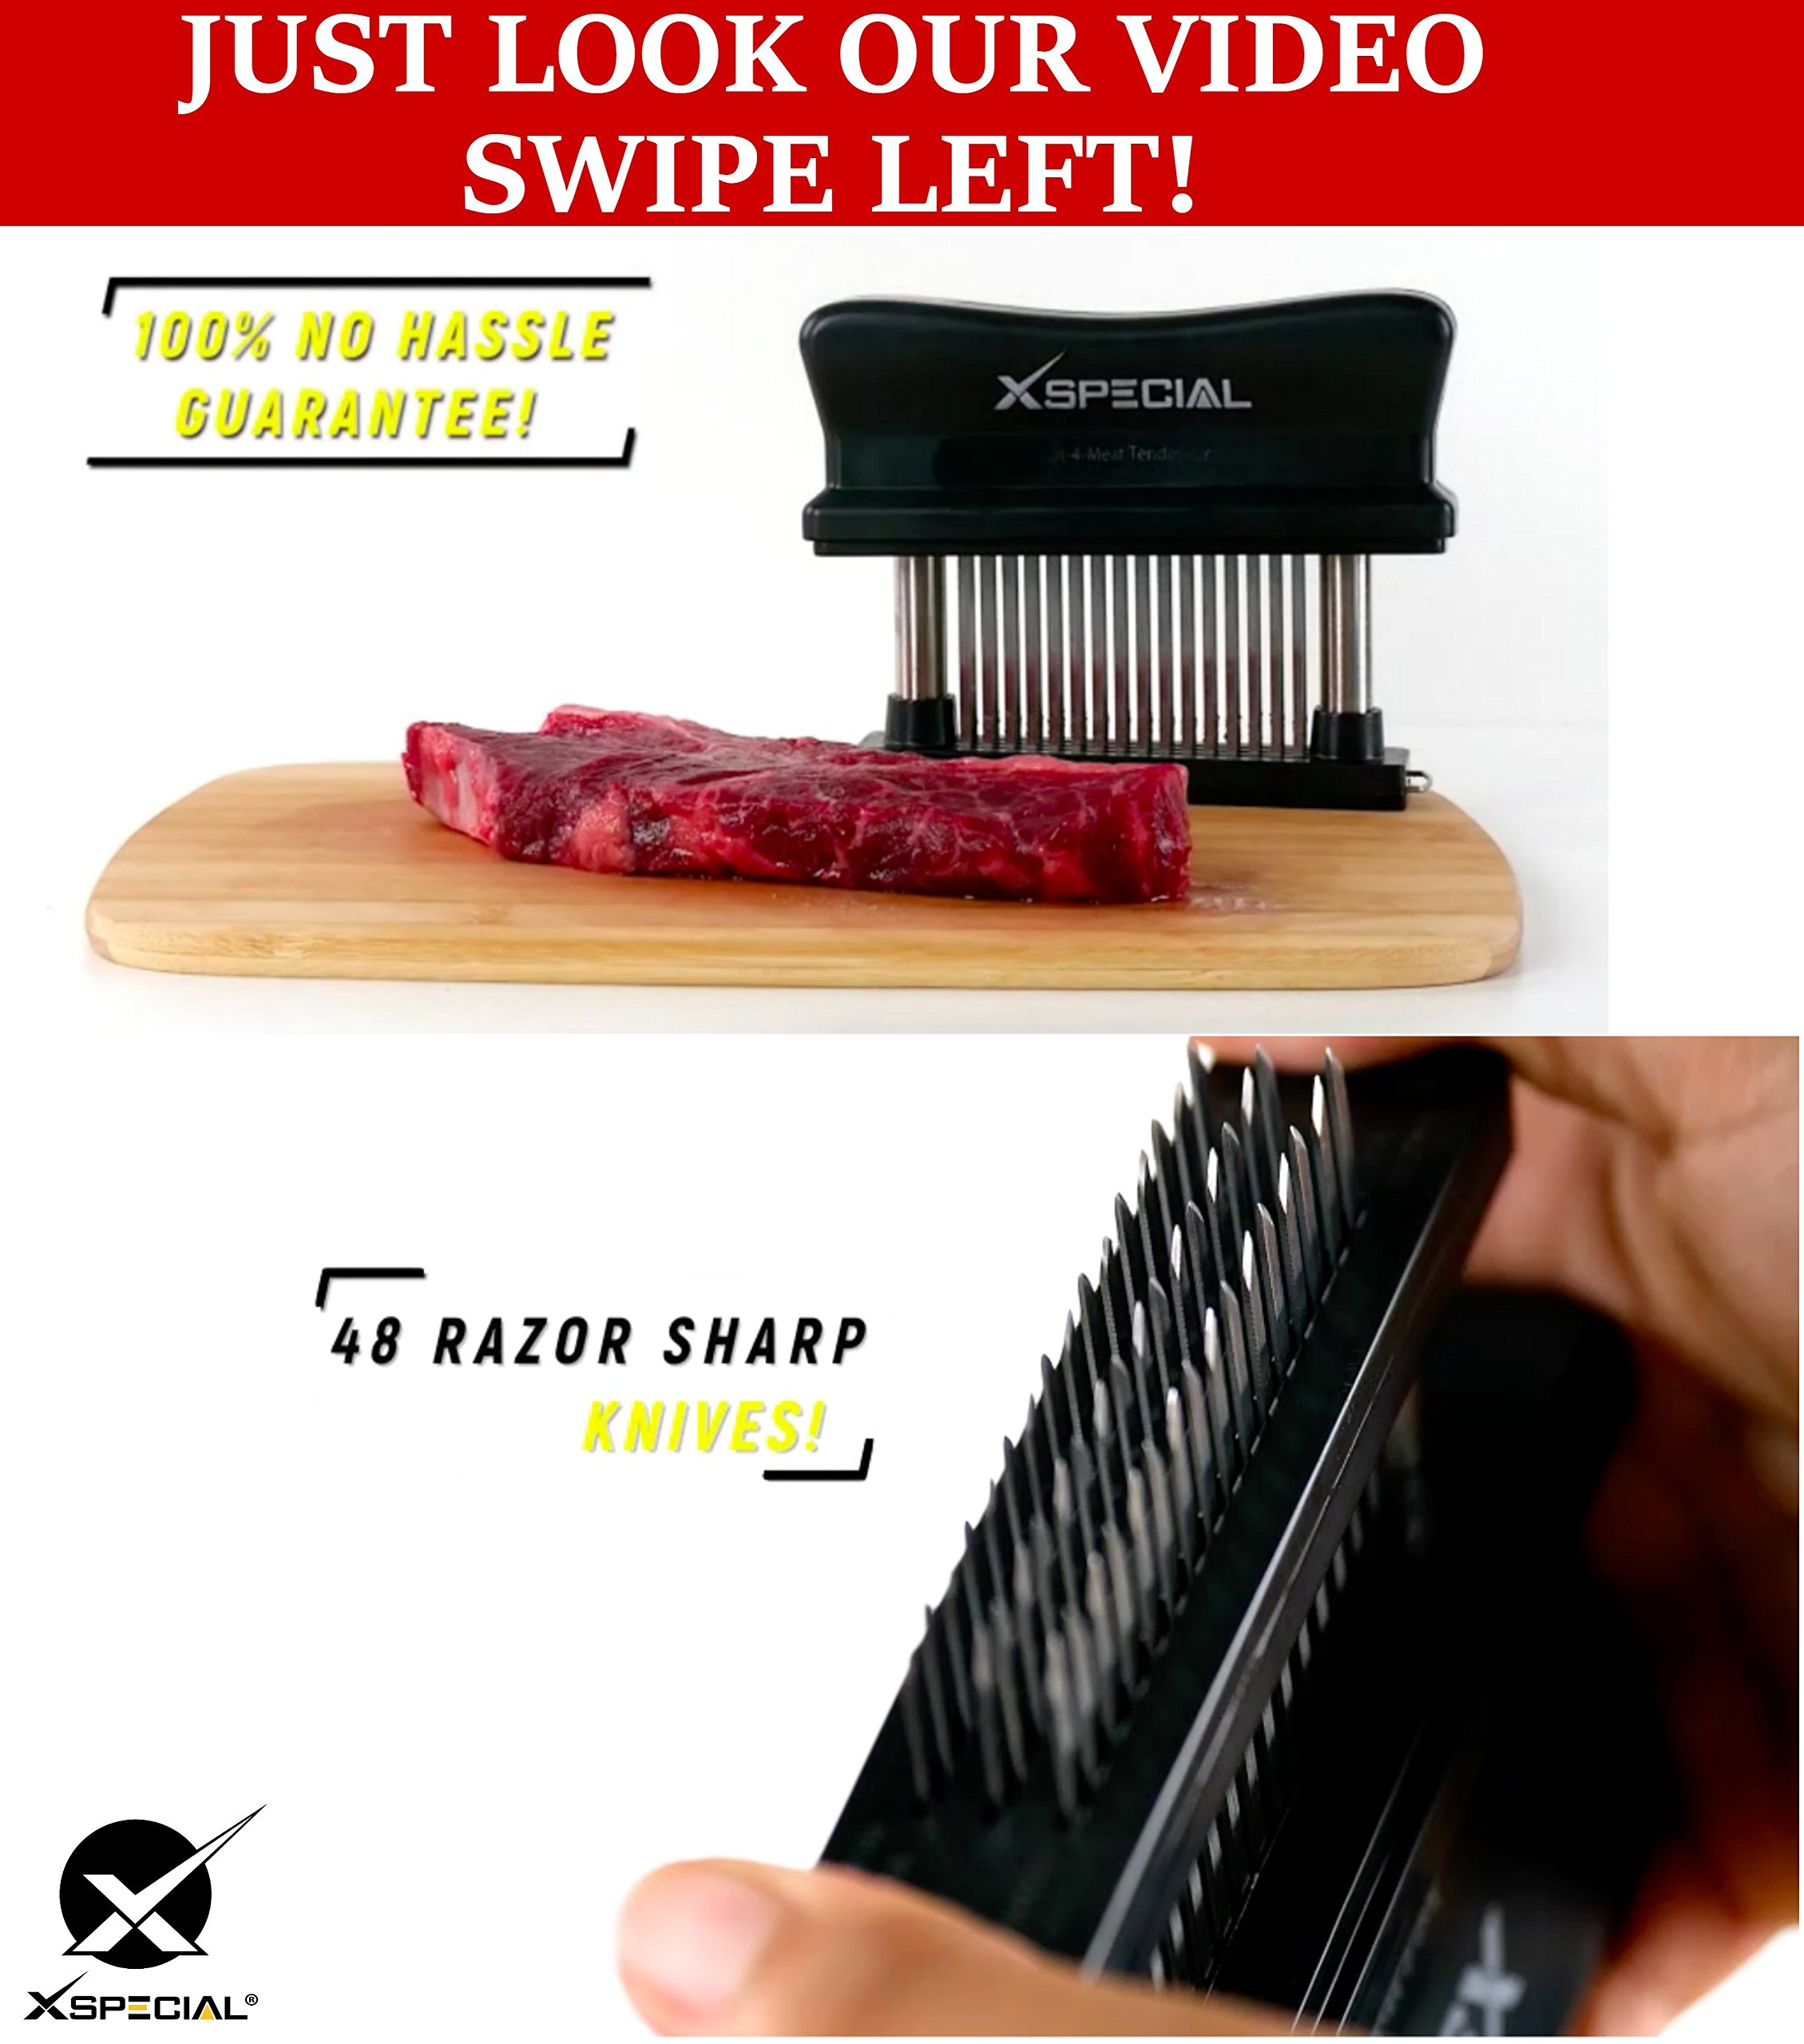 XSpecial Meat Tenderizer Tool - TRY IT NOW,Taste The Tenderness or REFUNDED > Kitchen Gadget Tenderizers 48 Blades Stainless Steel Needle = Best For Tenderizing,BBQ,Marinade & Flavor Maximizer by XSpecial (Image #2)